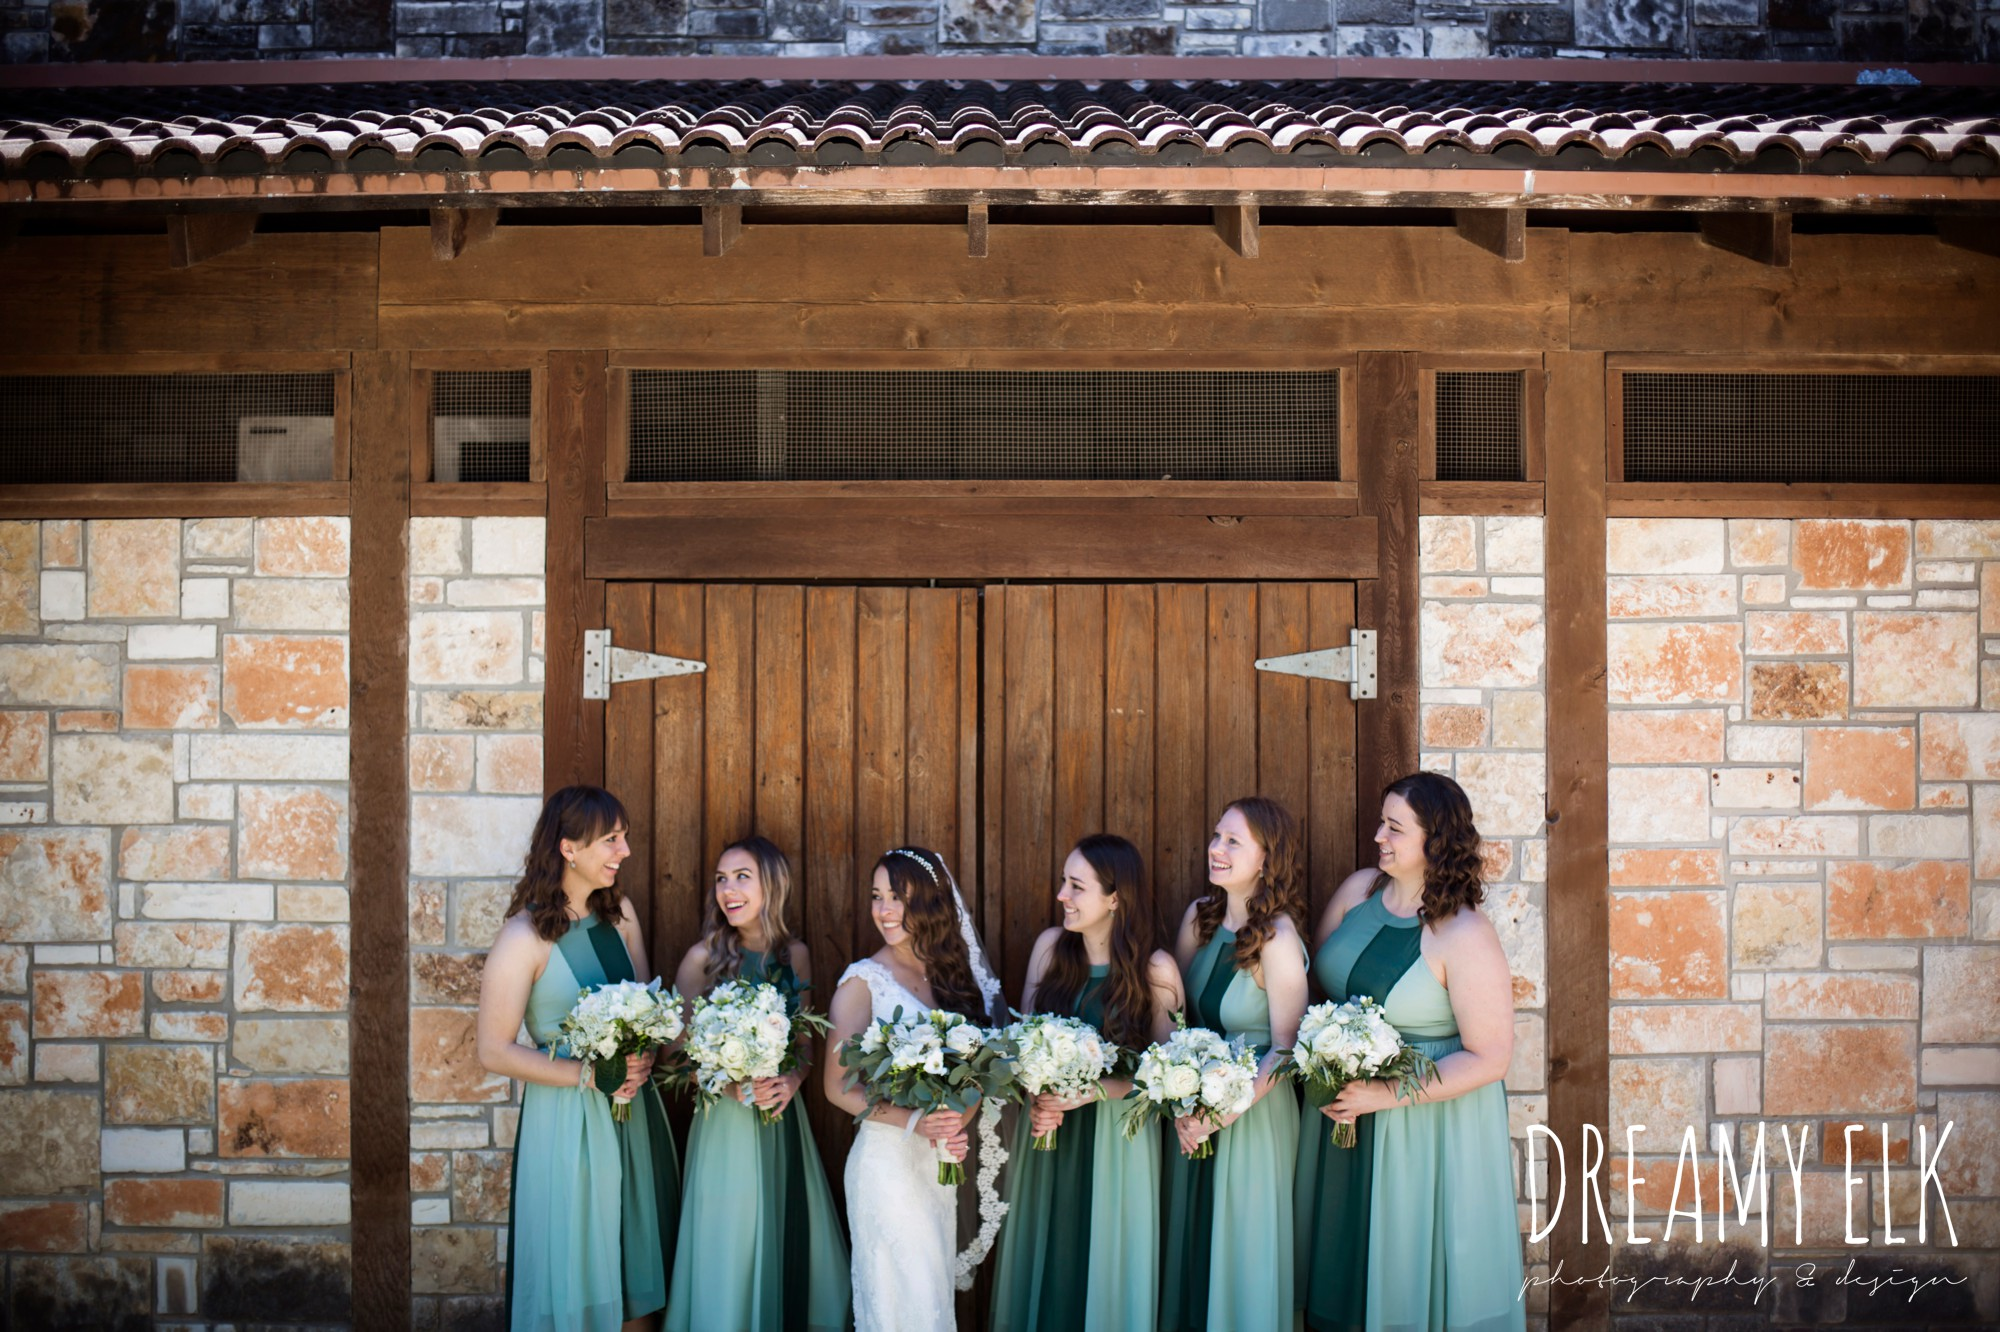 green bridesmaids dresses, mod cloth, lace wedding dress, lace wedding veil, white wedding bouquets, outdoor spring april wedding photo, chapel dulcinea ceremony, dripping springs, texas {dreamy elk photography and design}